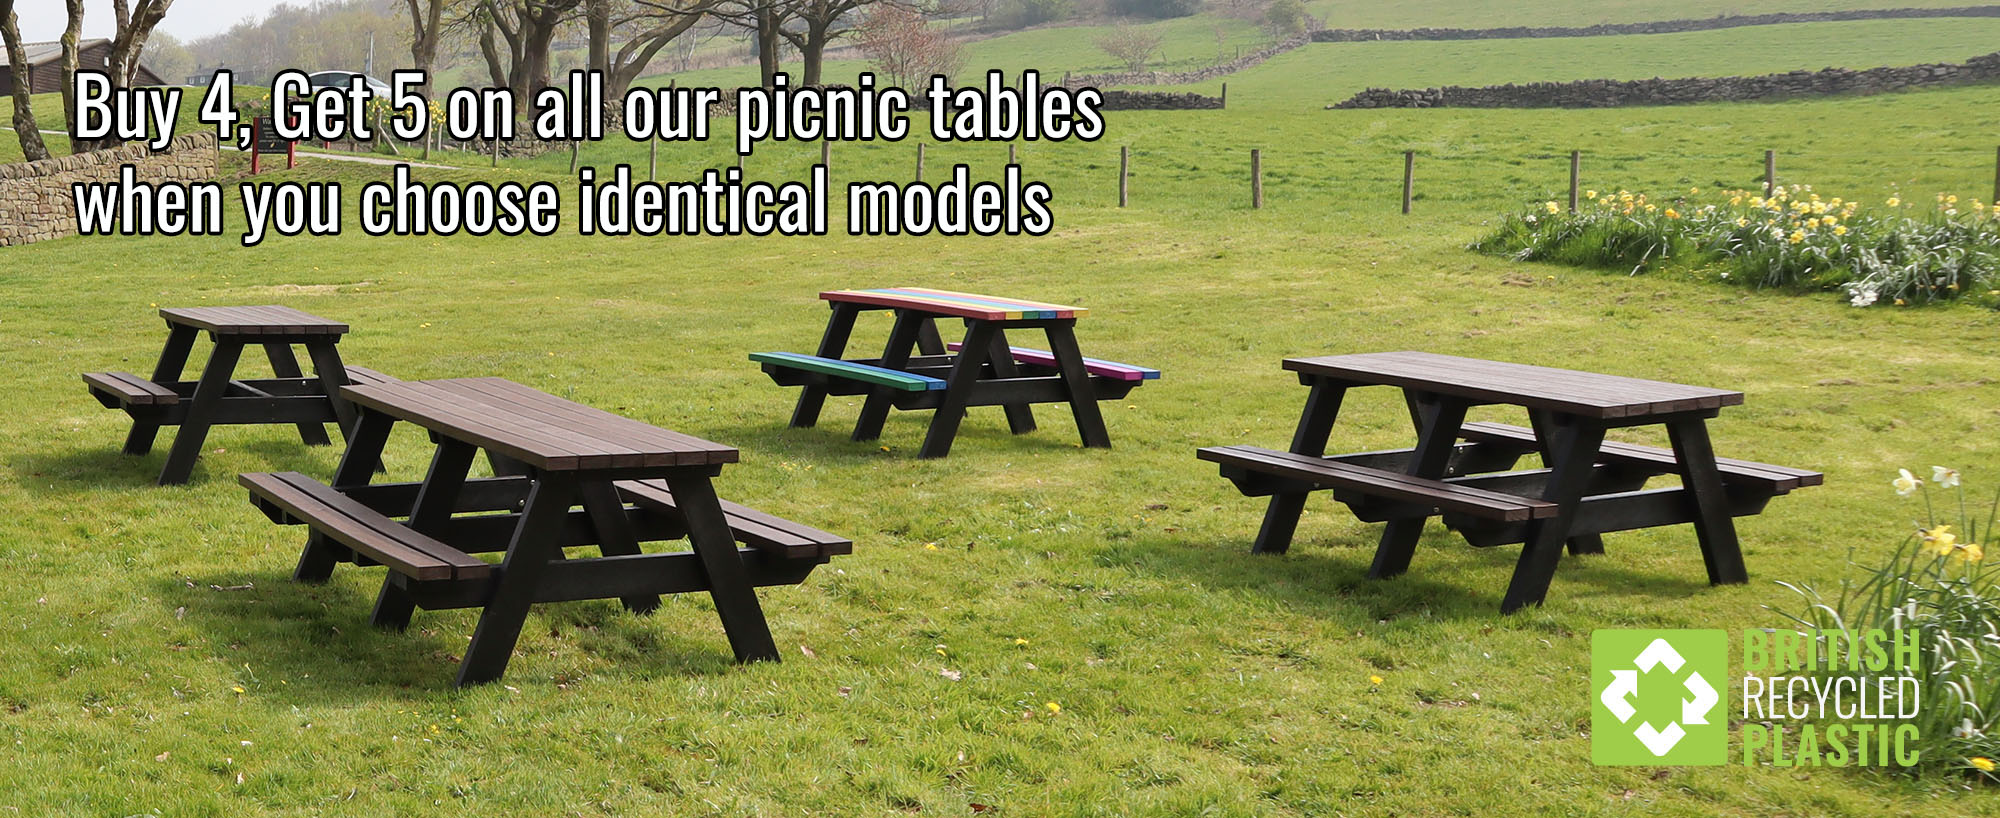 Buy 4 Get 5 on identical recycled plastic picnic table from British Recycled Plastic